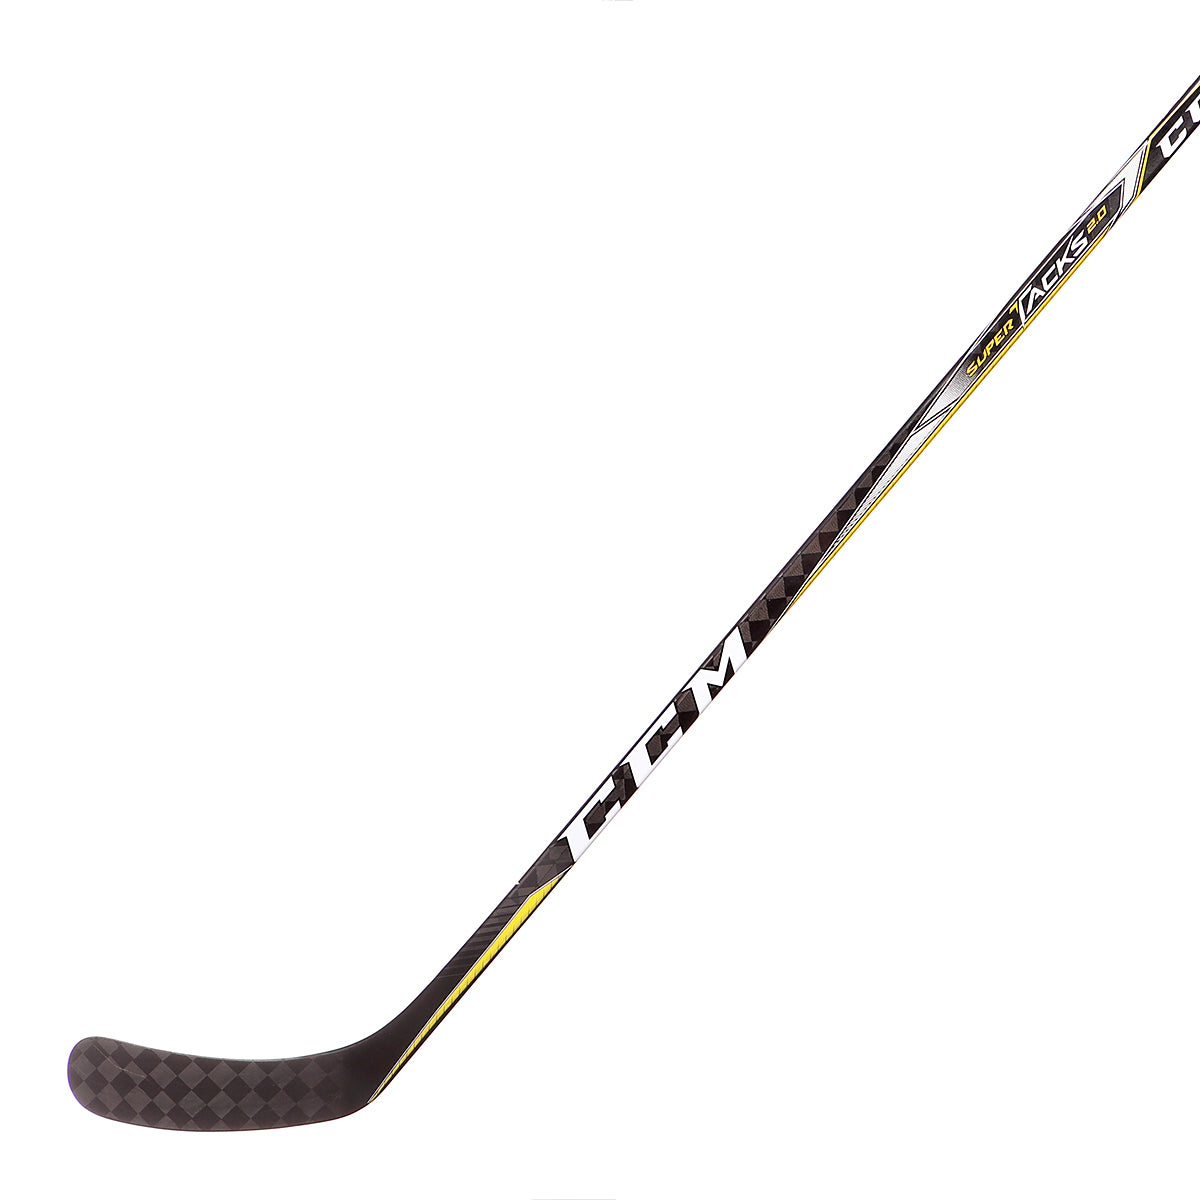 74c014df04f Pro Stock Hockey Sticks - Large Selection - Best Prices on the Web